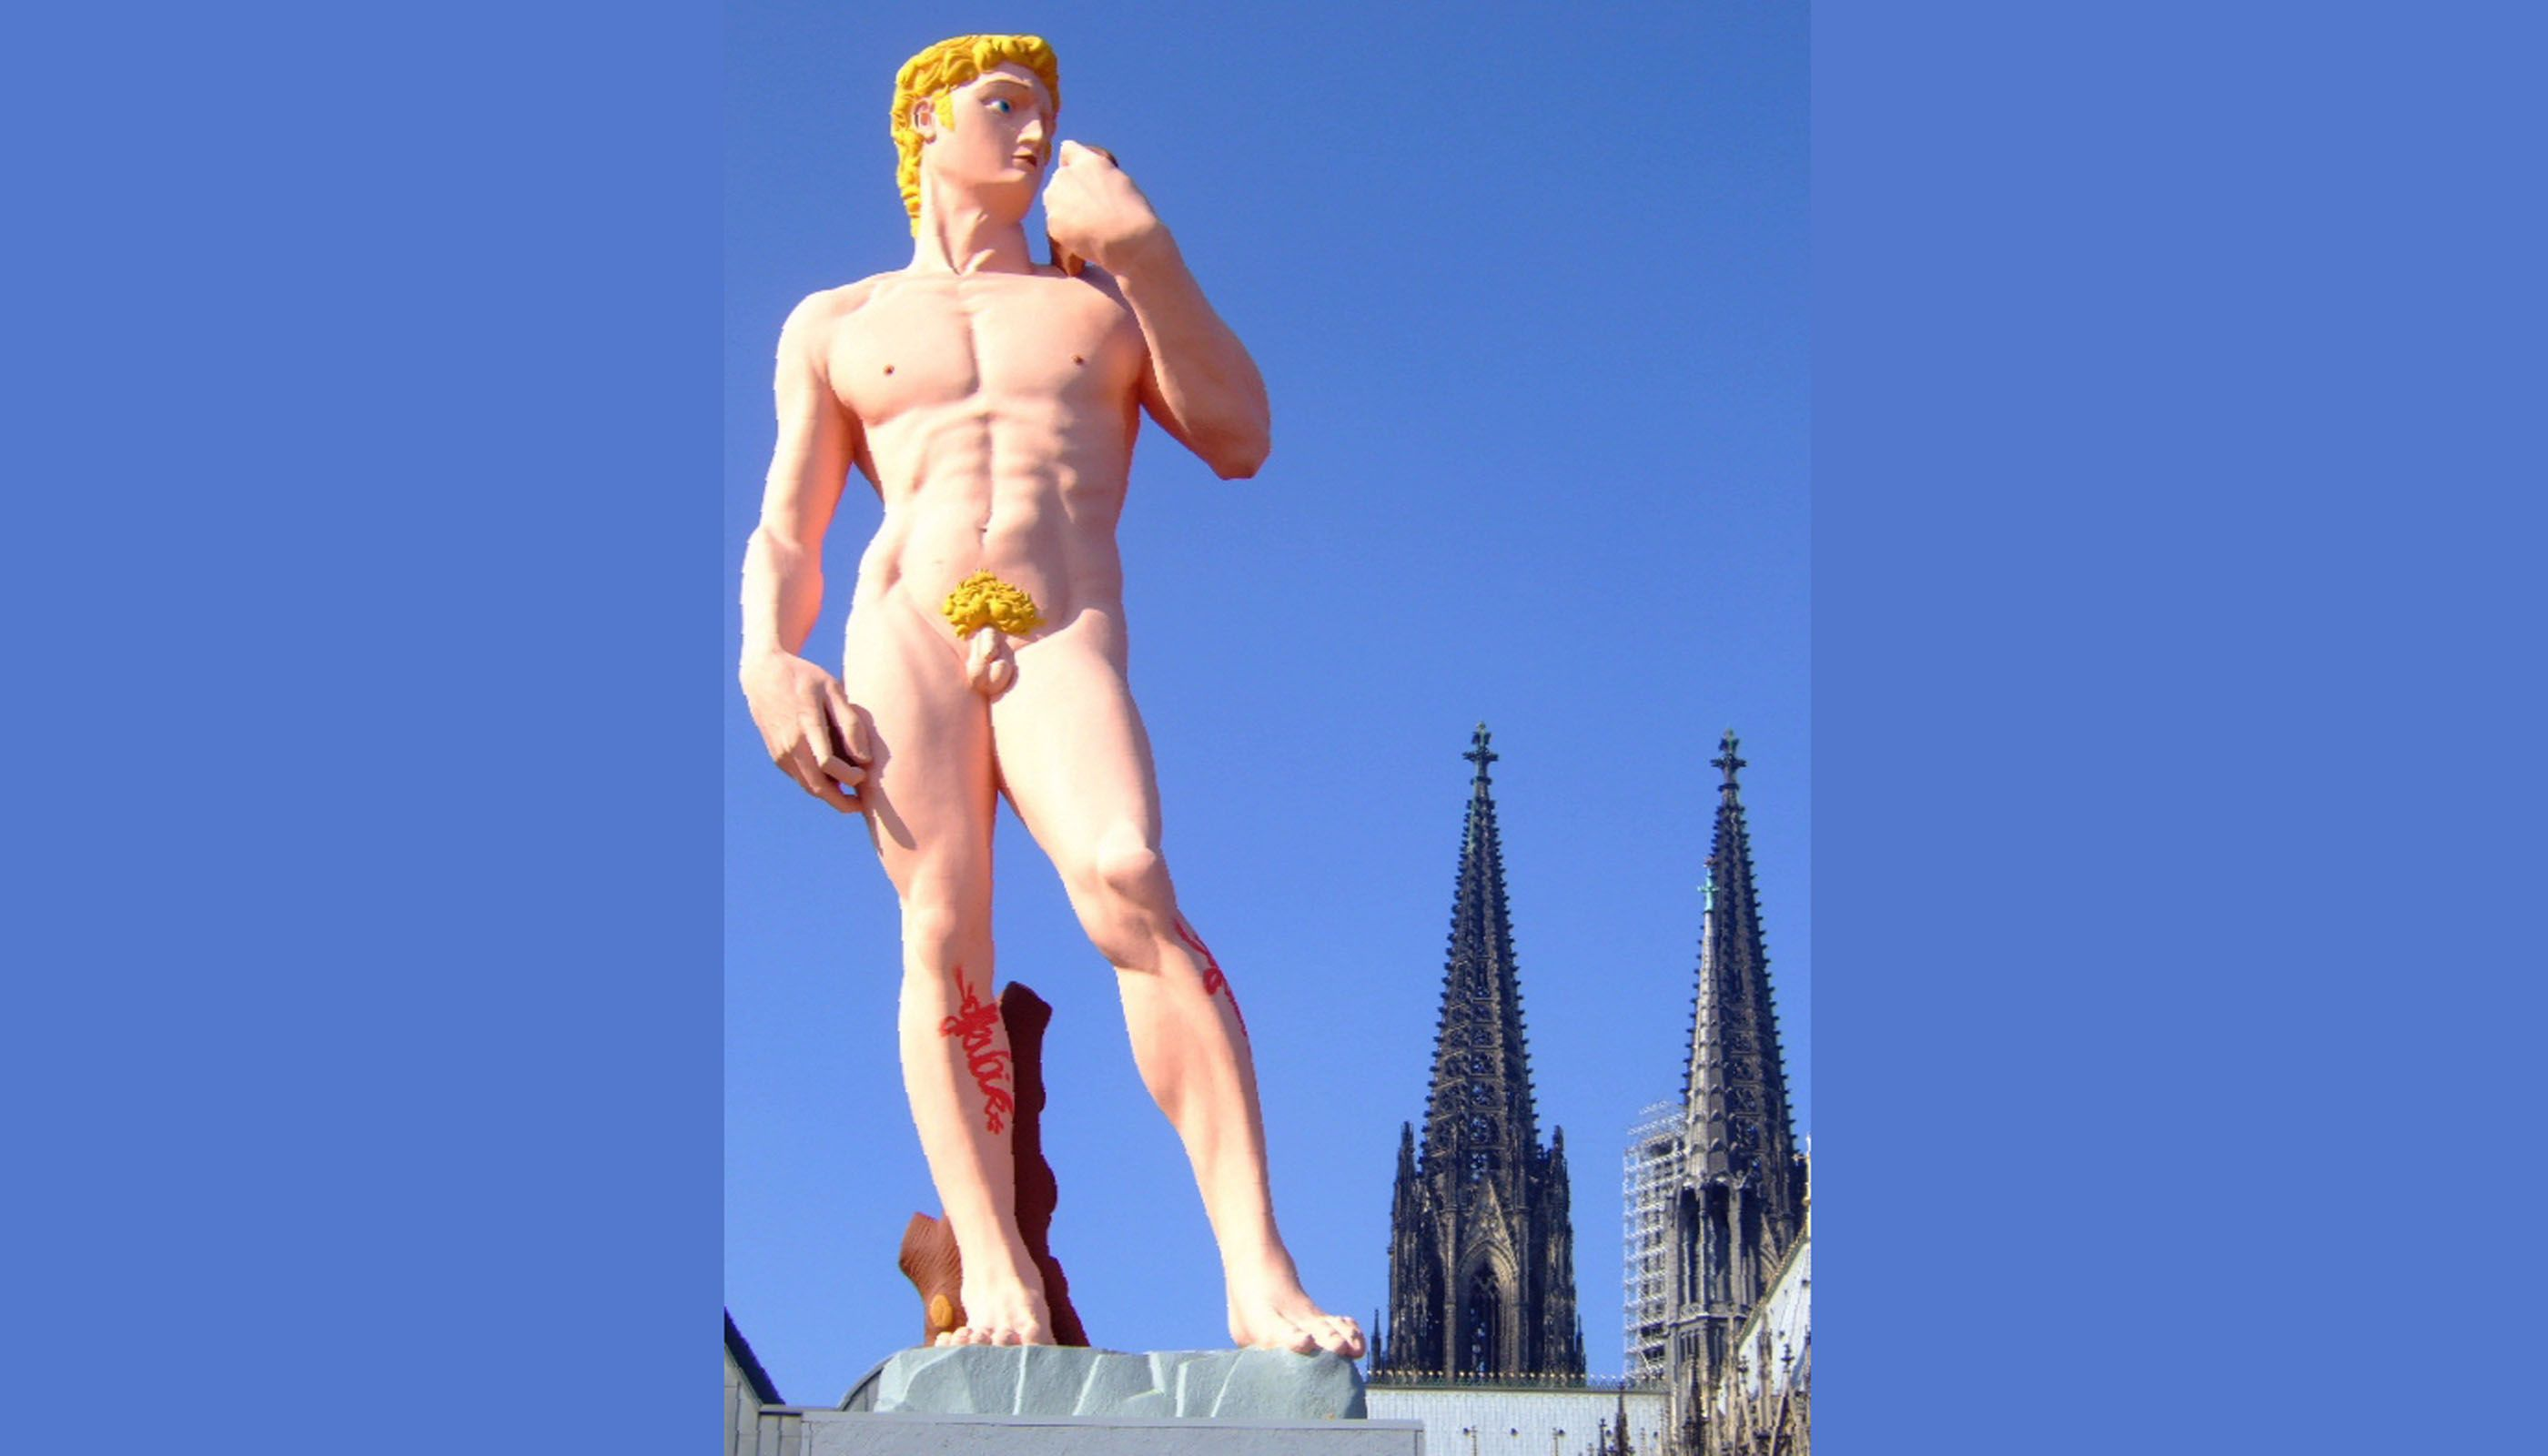 David in Cologne (Creative Commons: Leonce-49)